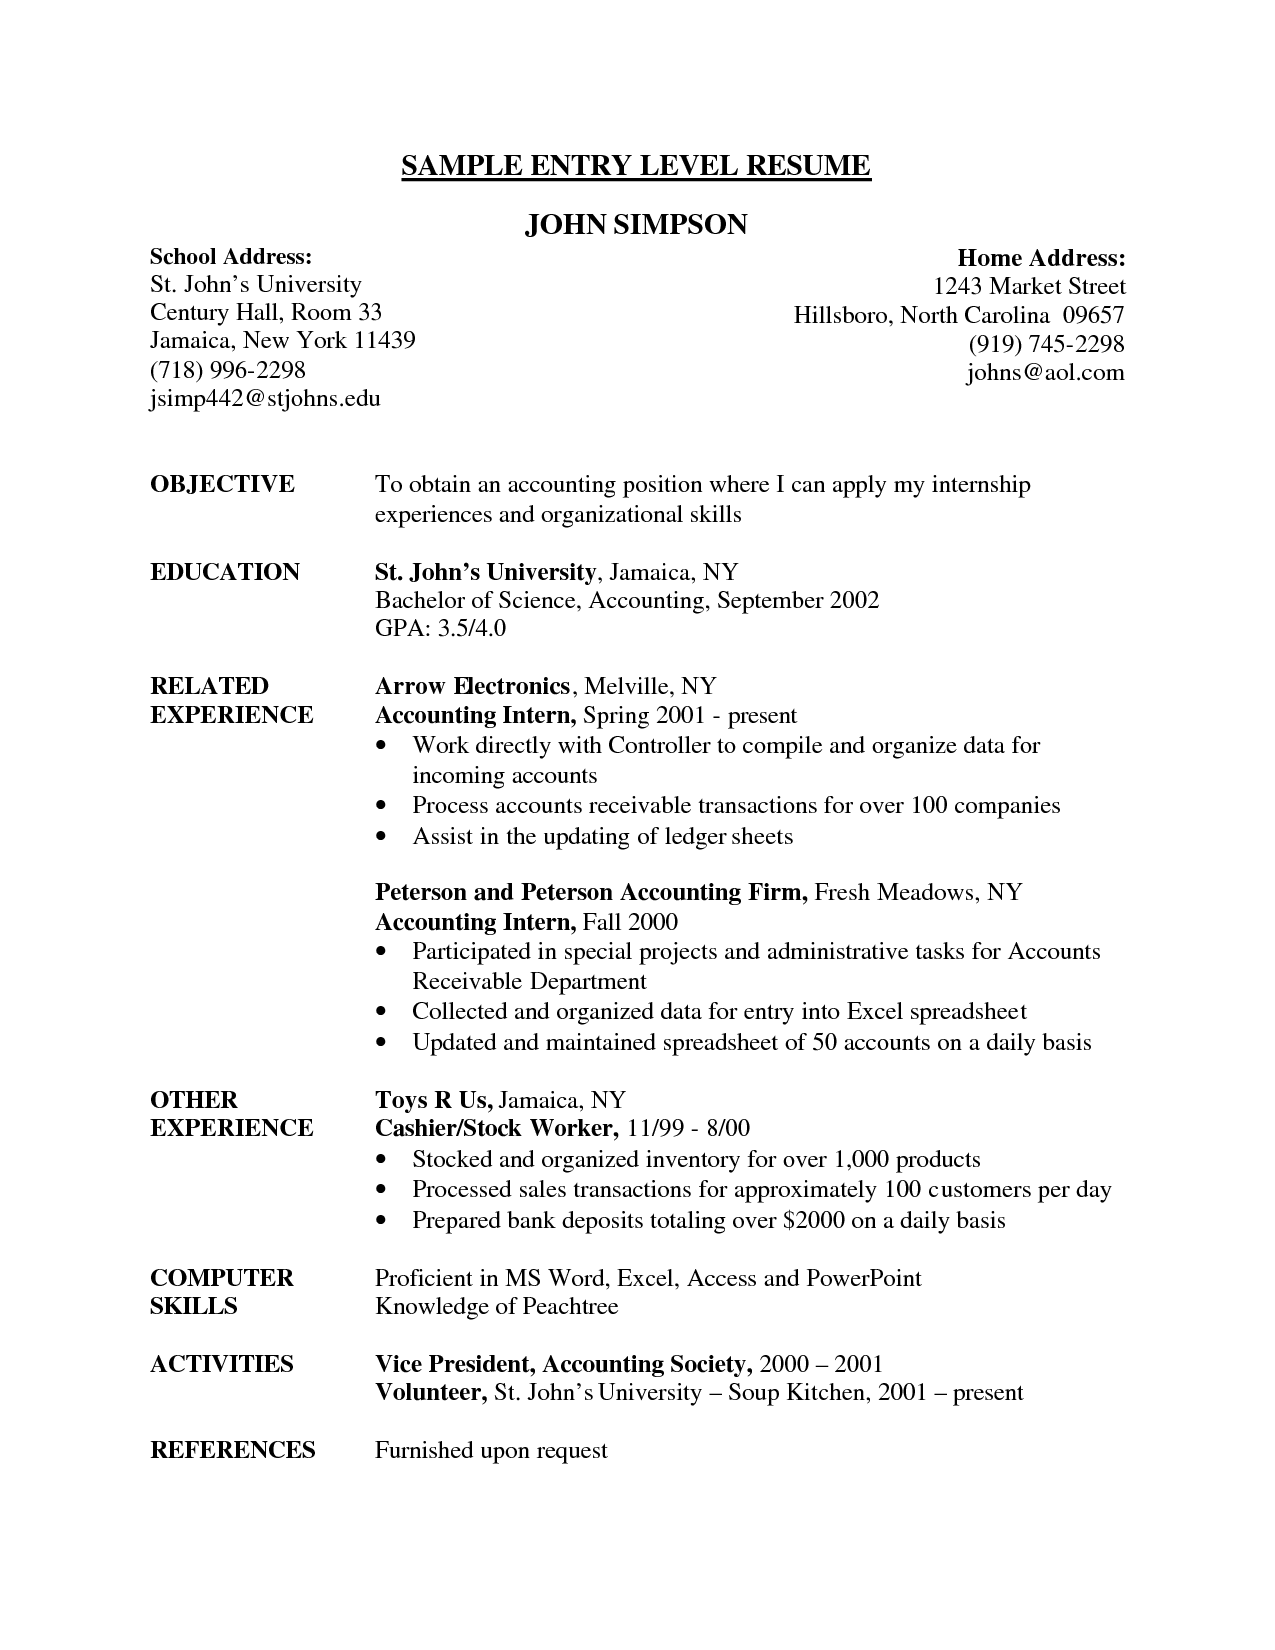 Resume Sample Objectives Entry Level Writing And Editing Services